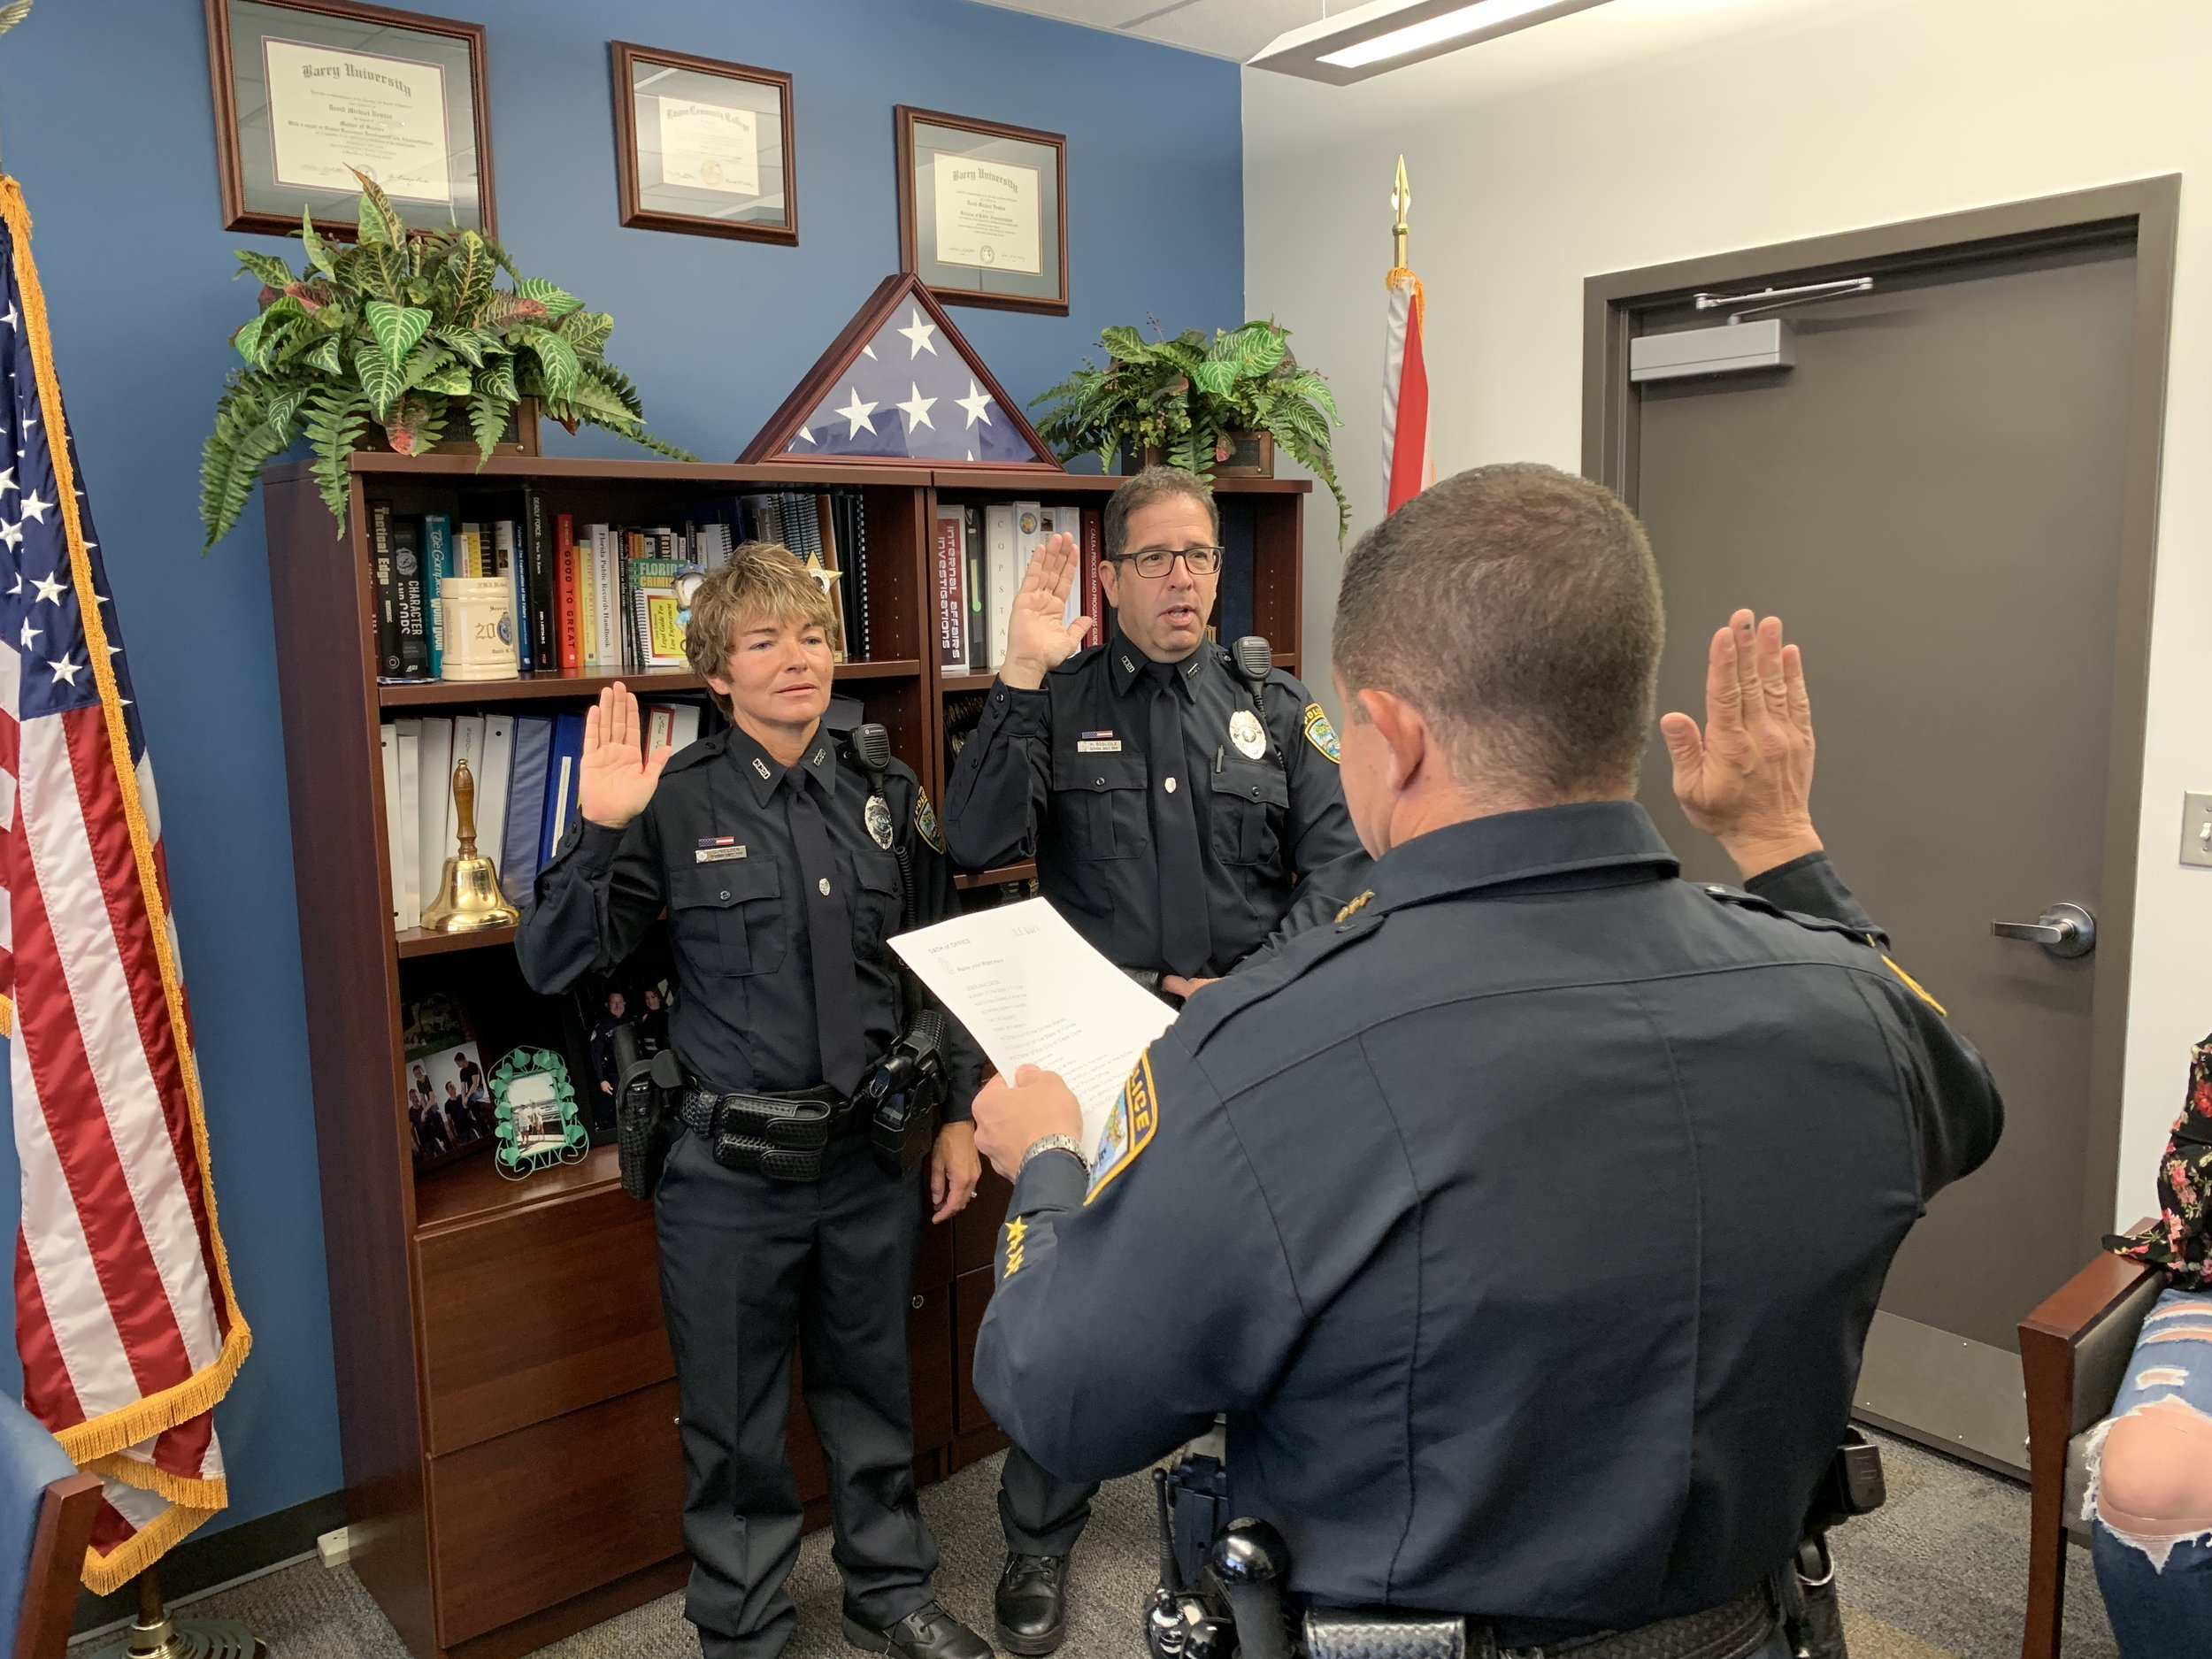 Chief Newlan swearing in Officers Bogliole and Nielsen.